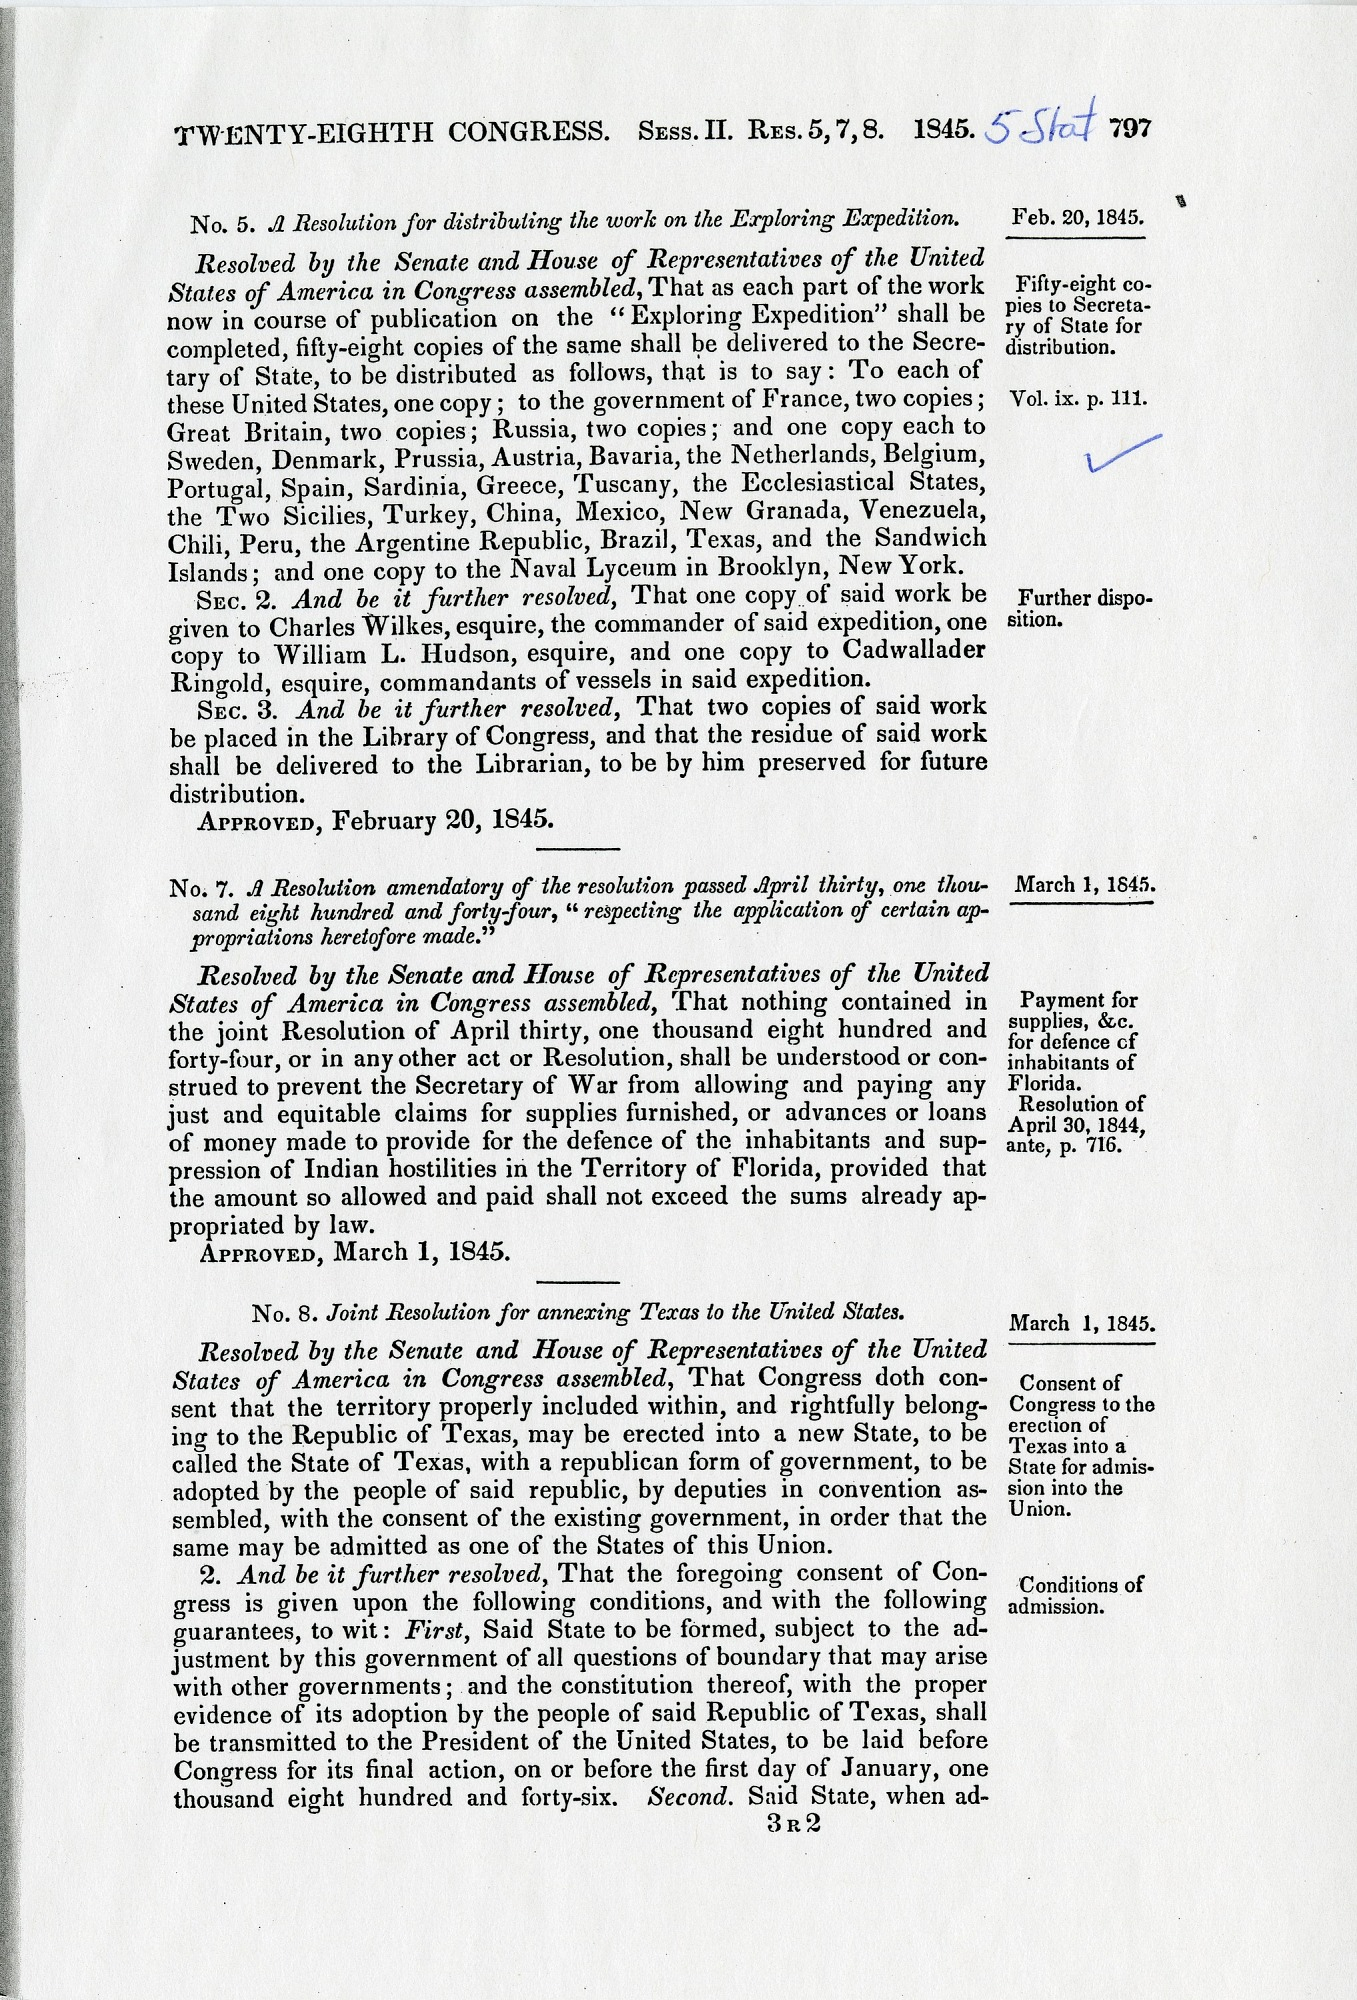 Resolution on the U.S. Exploring Expedition